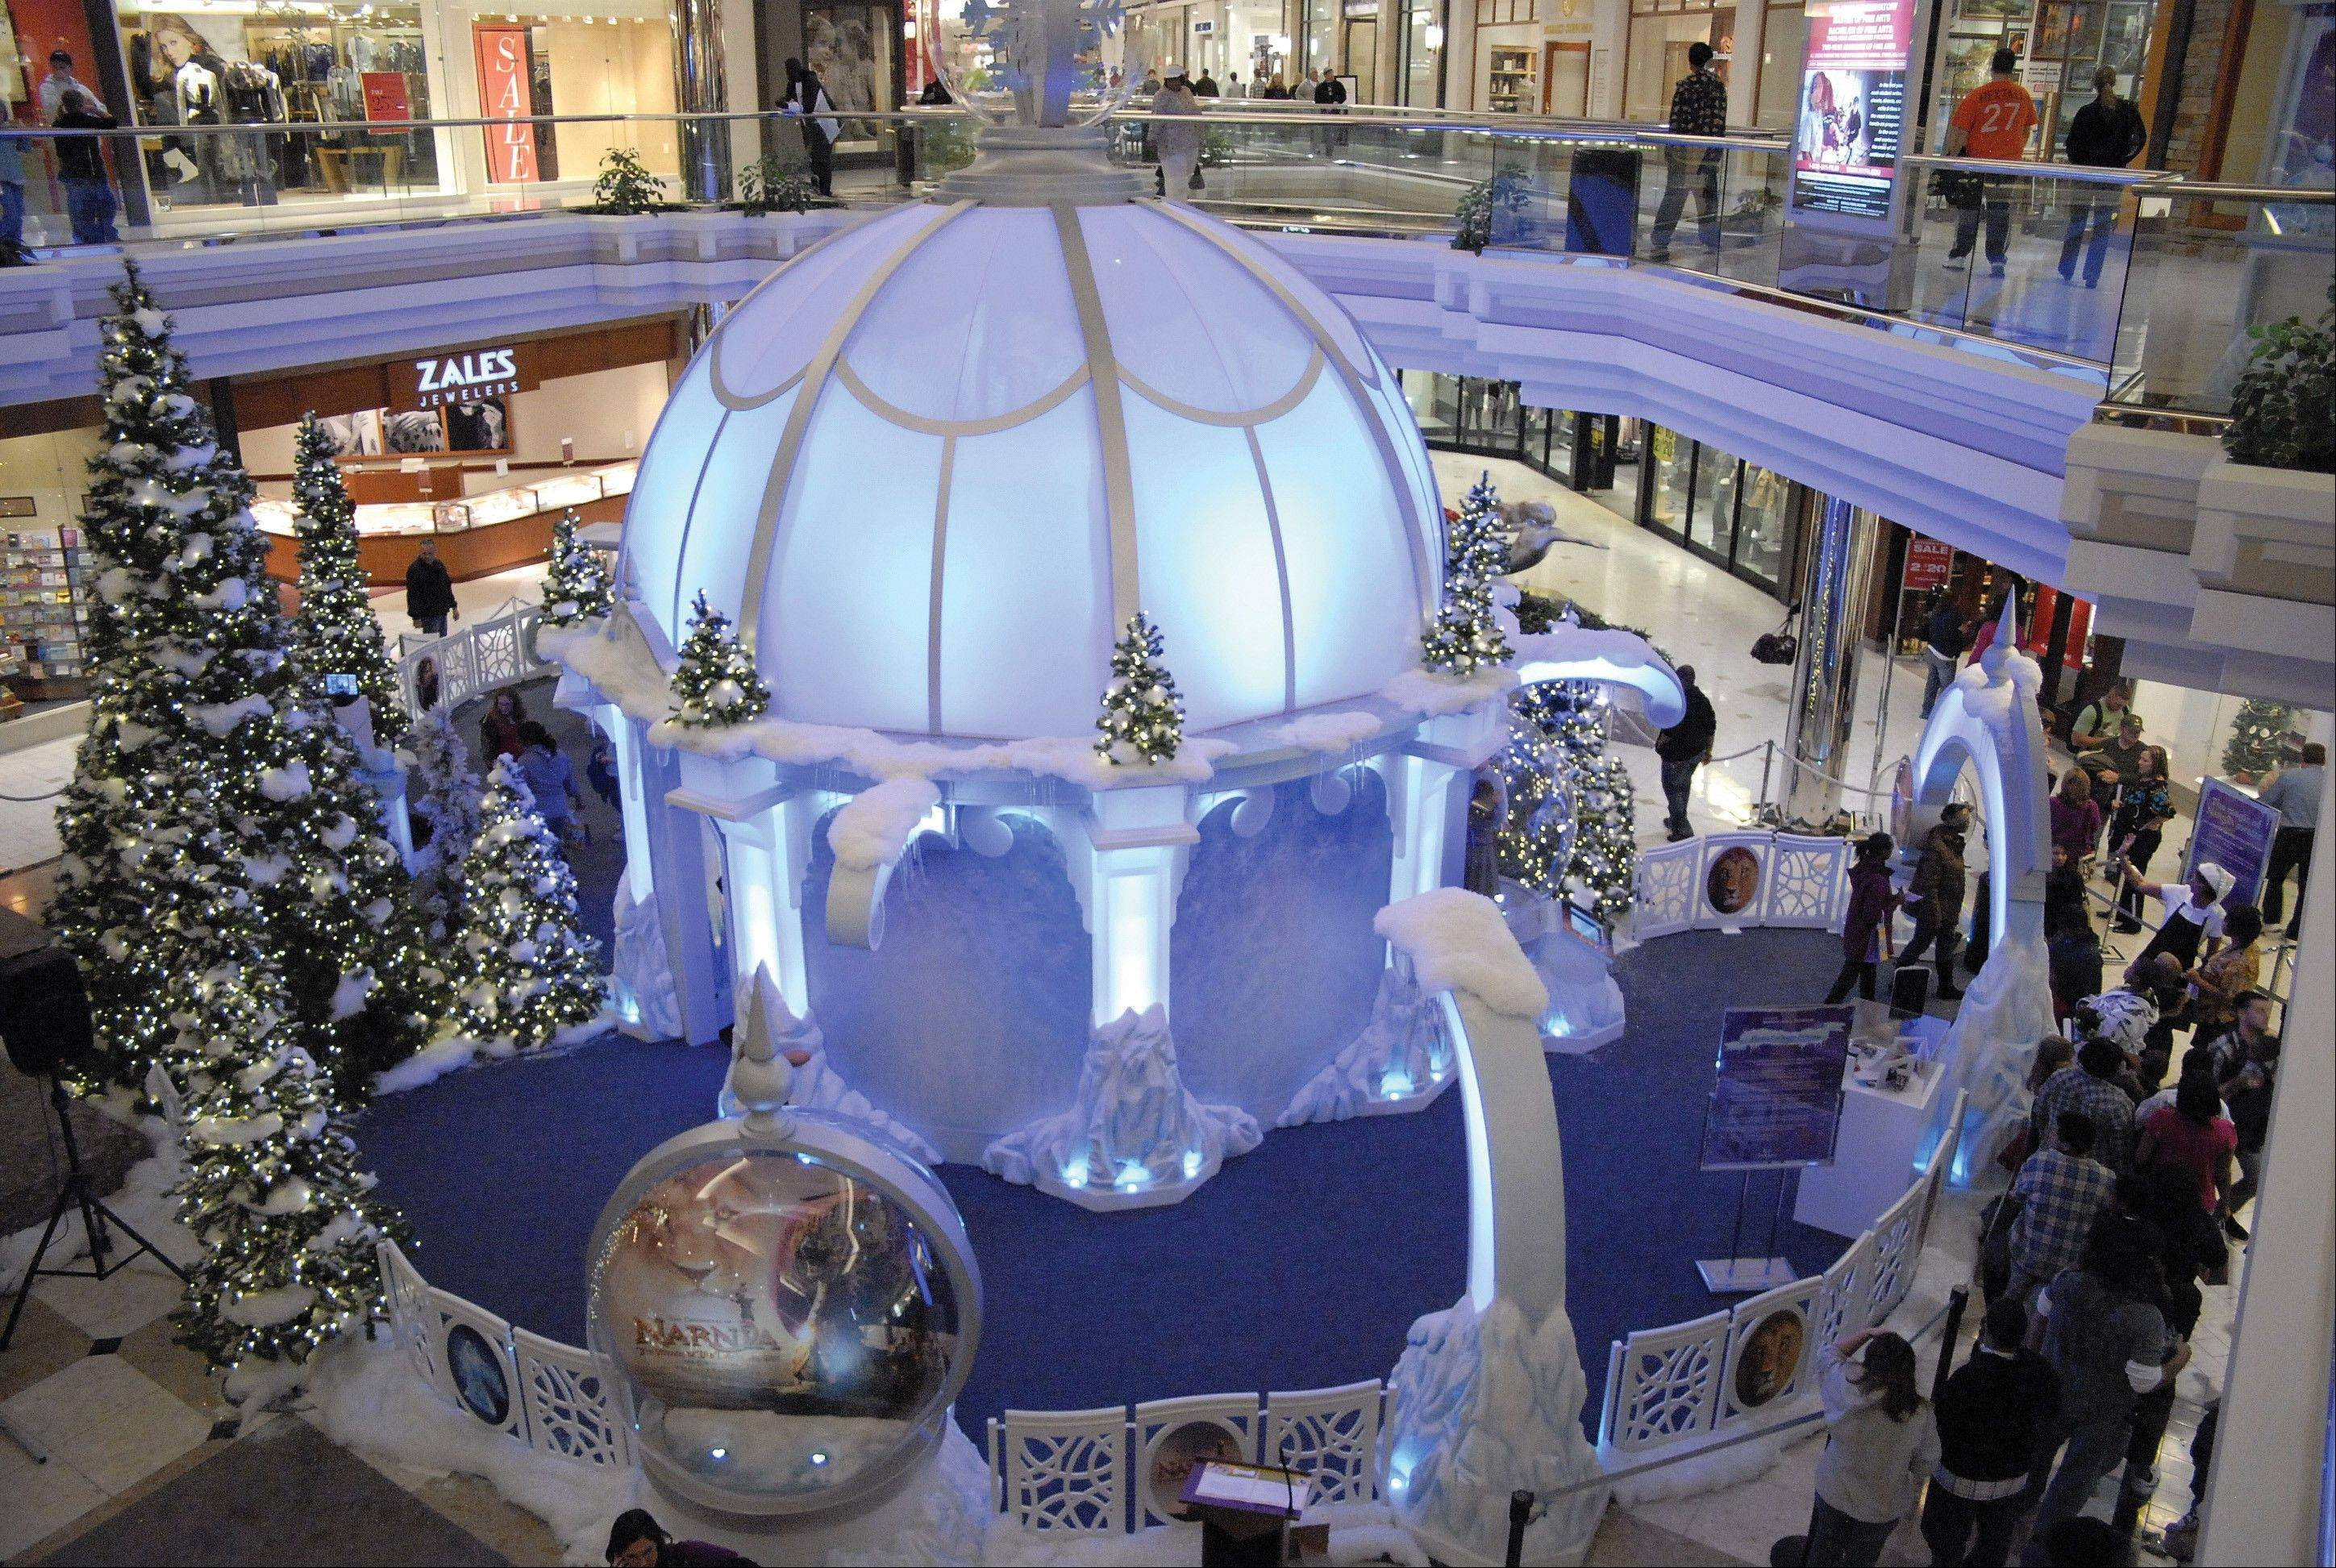 The Ice Palace, a 30-foot ice dome at MacArthur Center in Norfolk, Va., features falling snow, a light show, huge snow globes and a 360-degree interactive exhibit on the Arctic. The attraction is on display through Dec. 24.